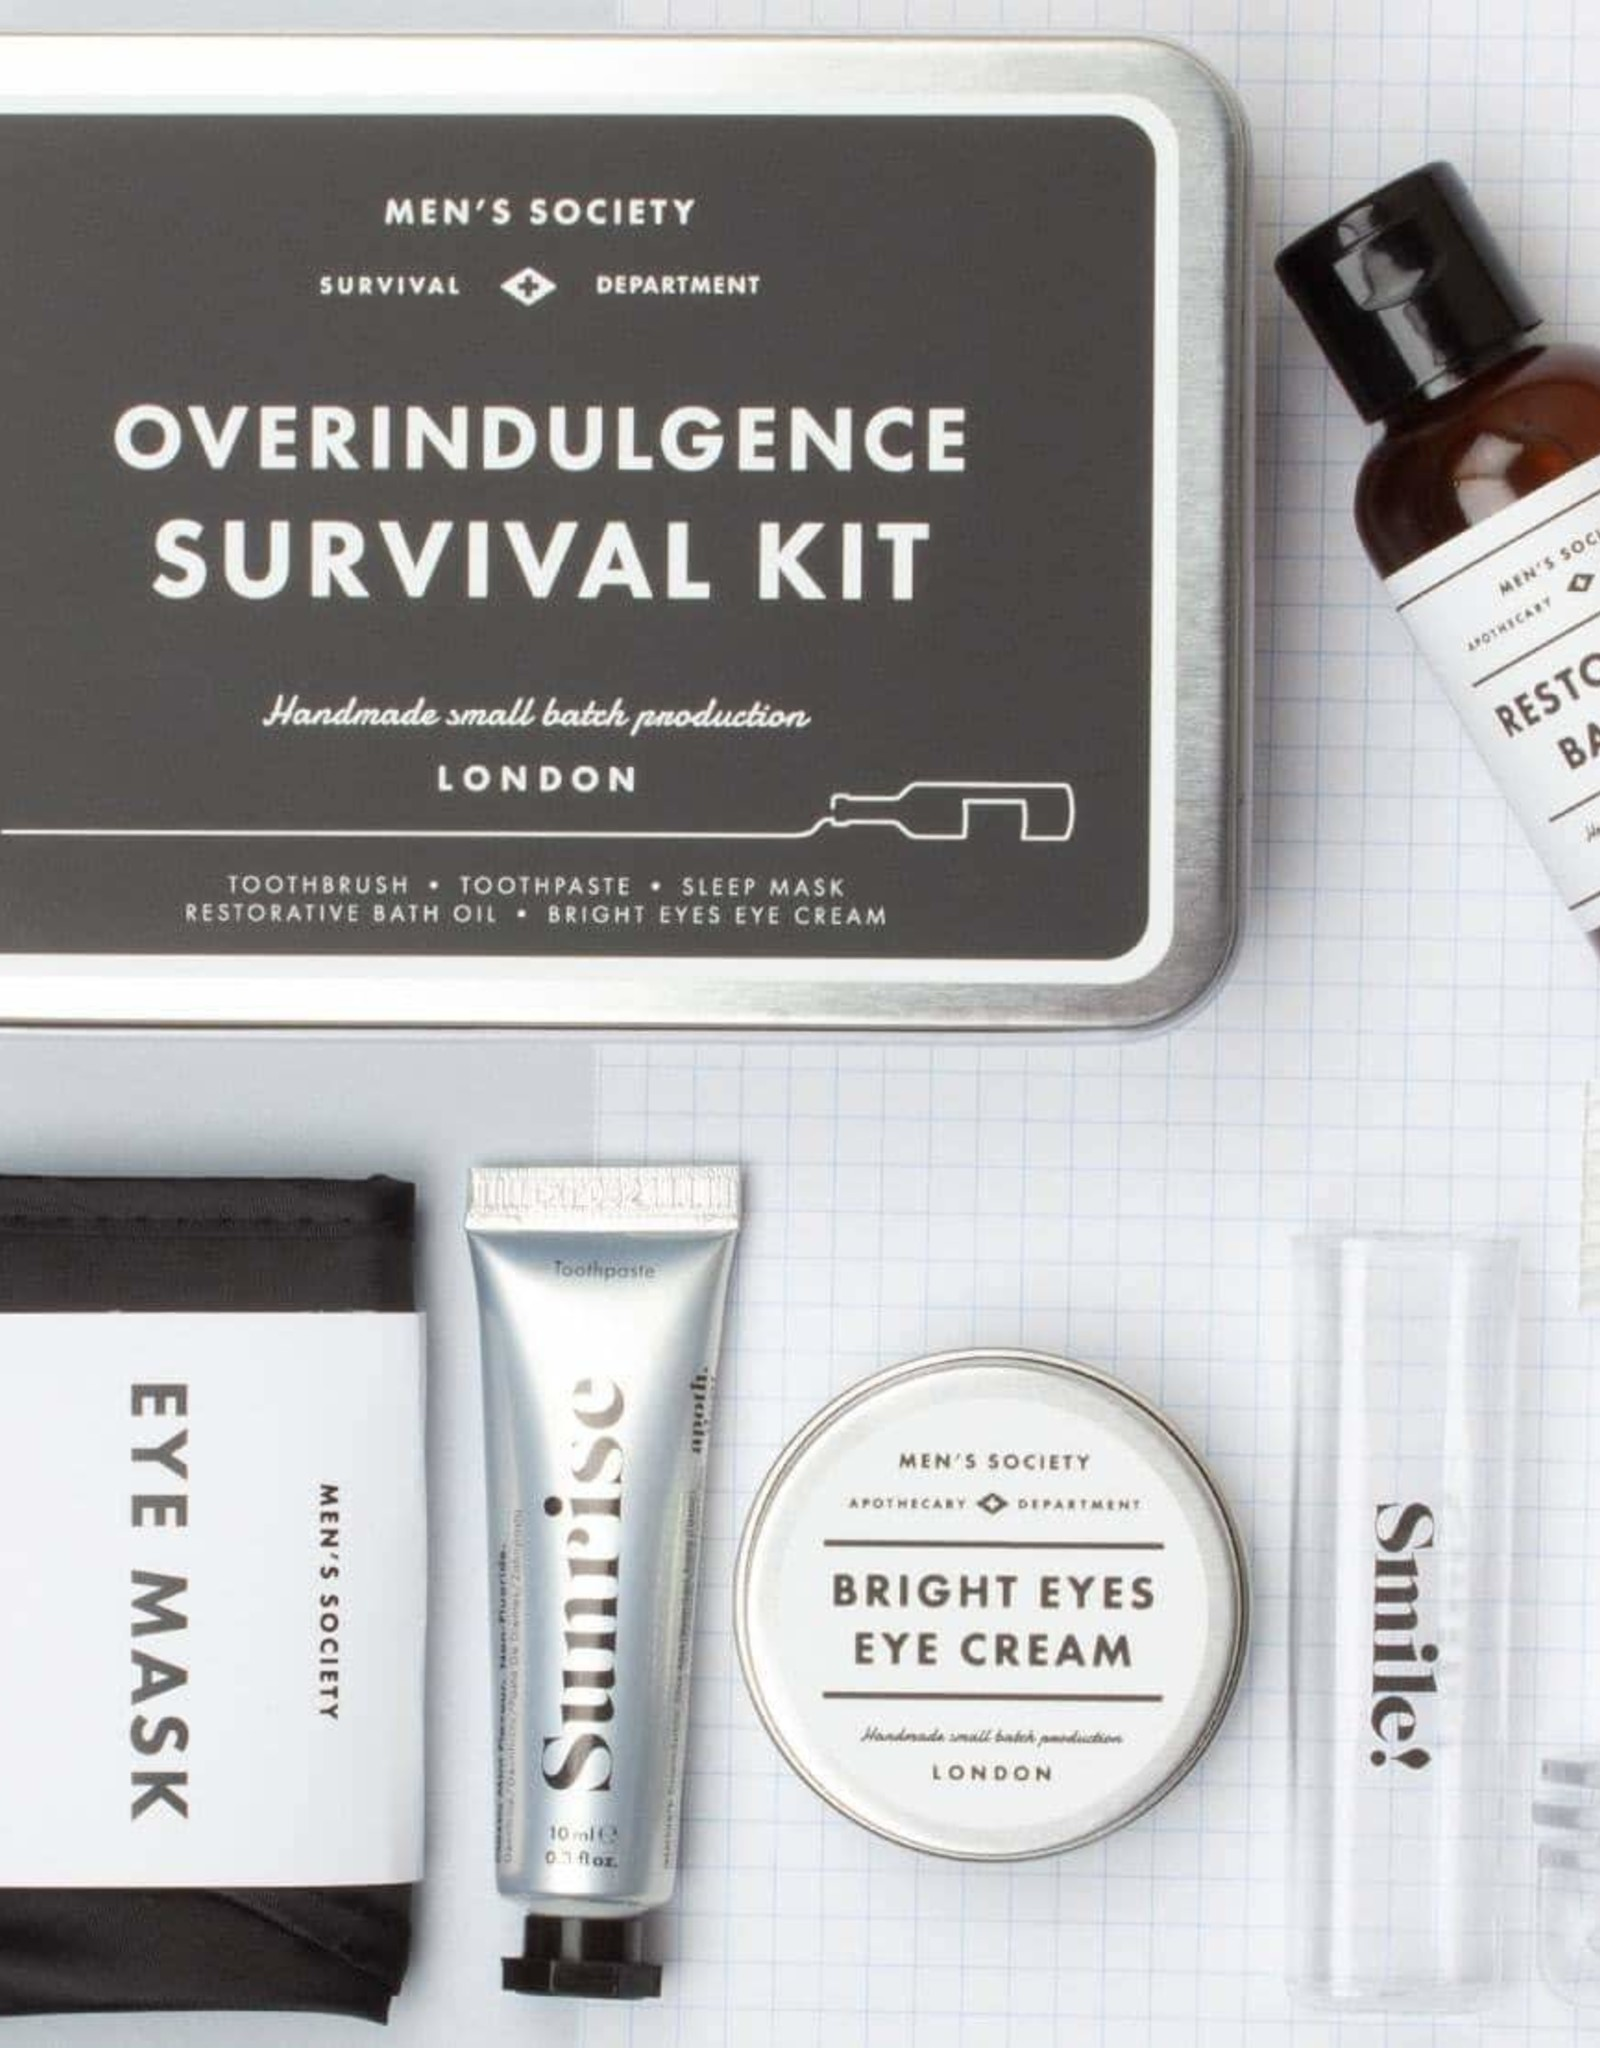 Men's Society Overindulgence Survival Kit